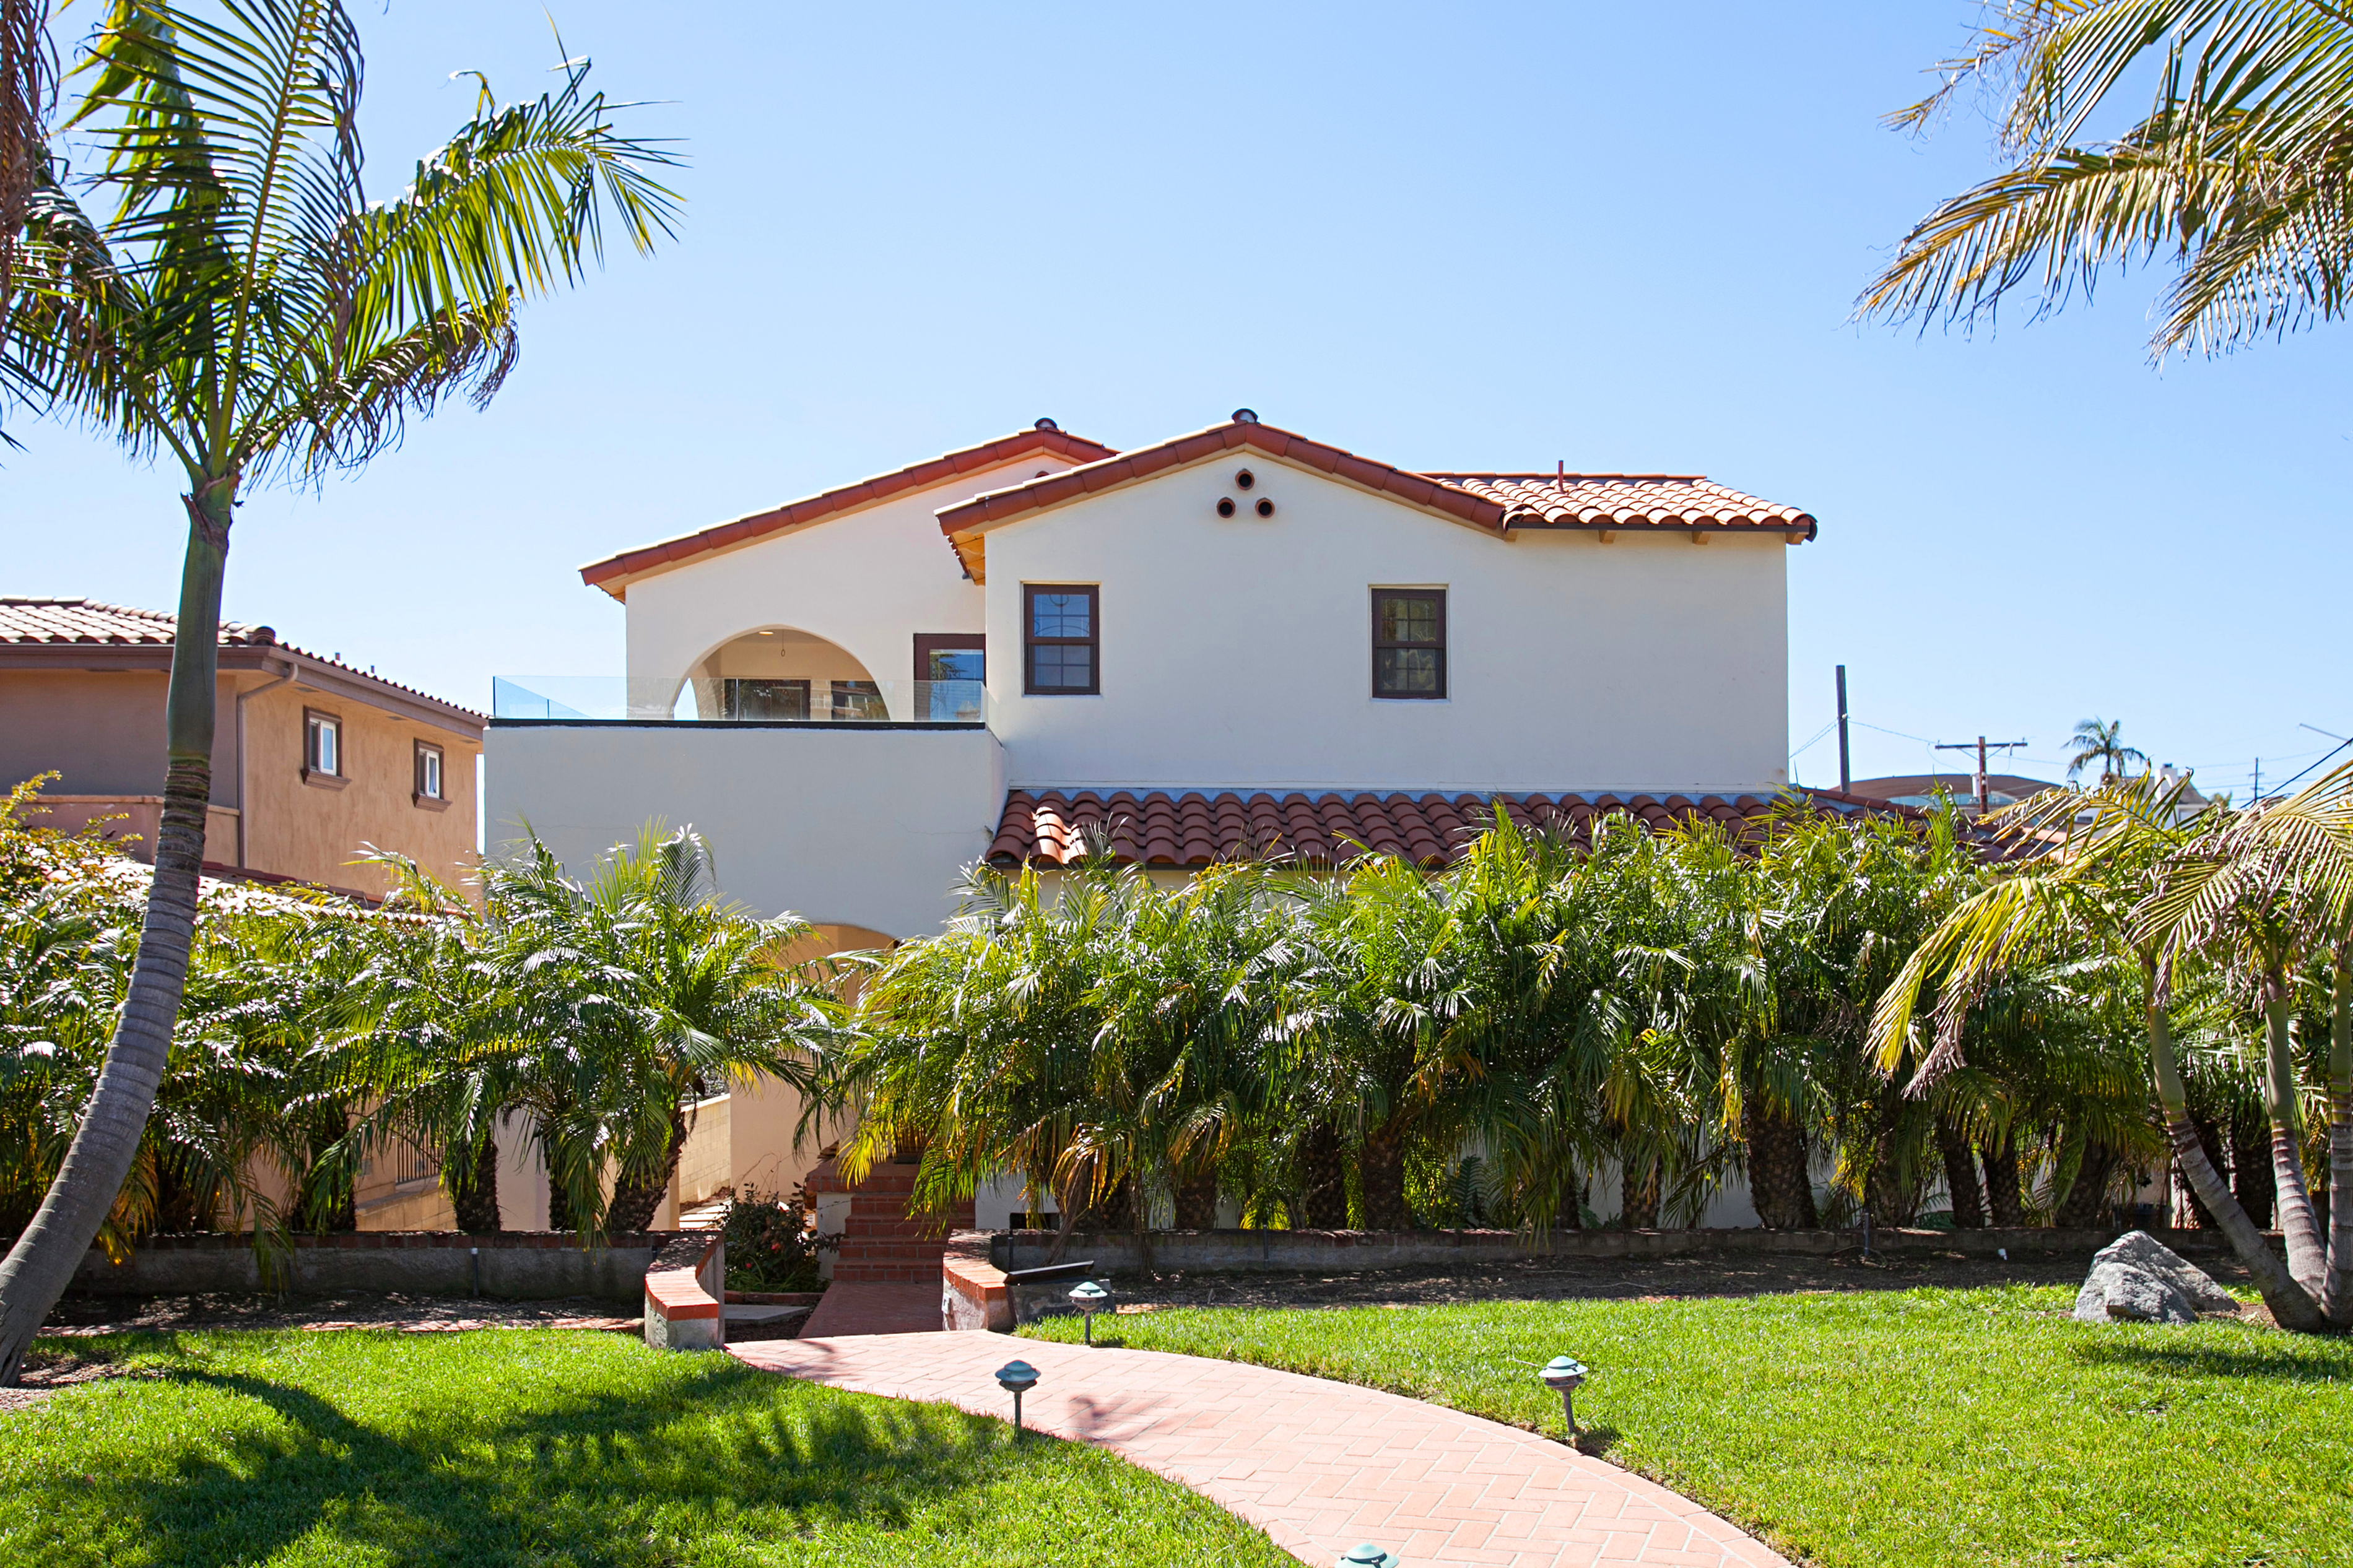 San Diego CA Vacation Rental Landscaped grounds lead